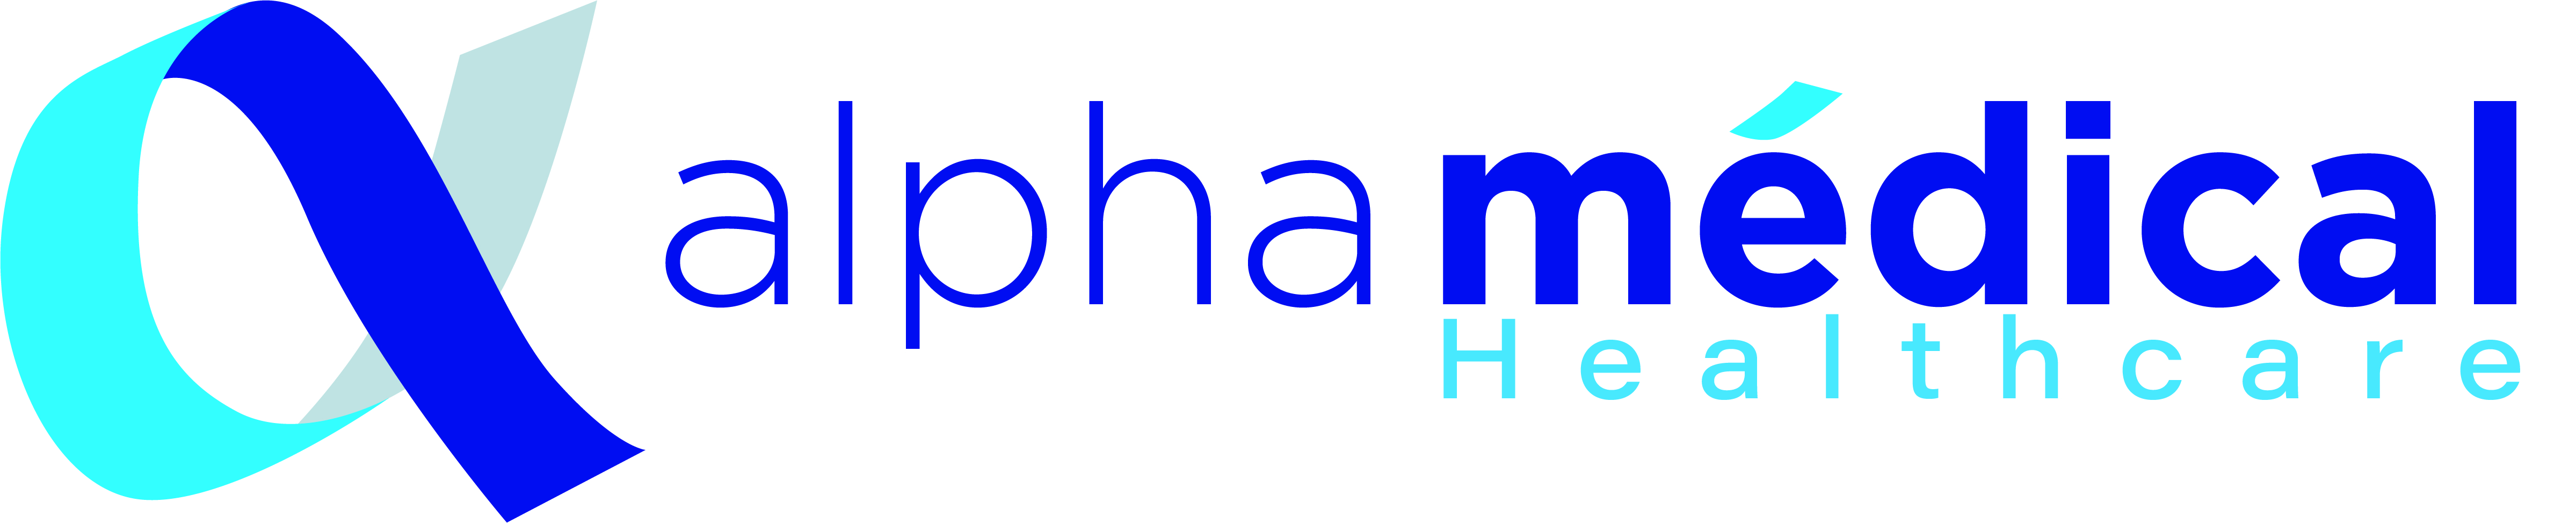 ALPHA MEDICAL HEALTHCARE